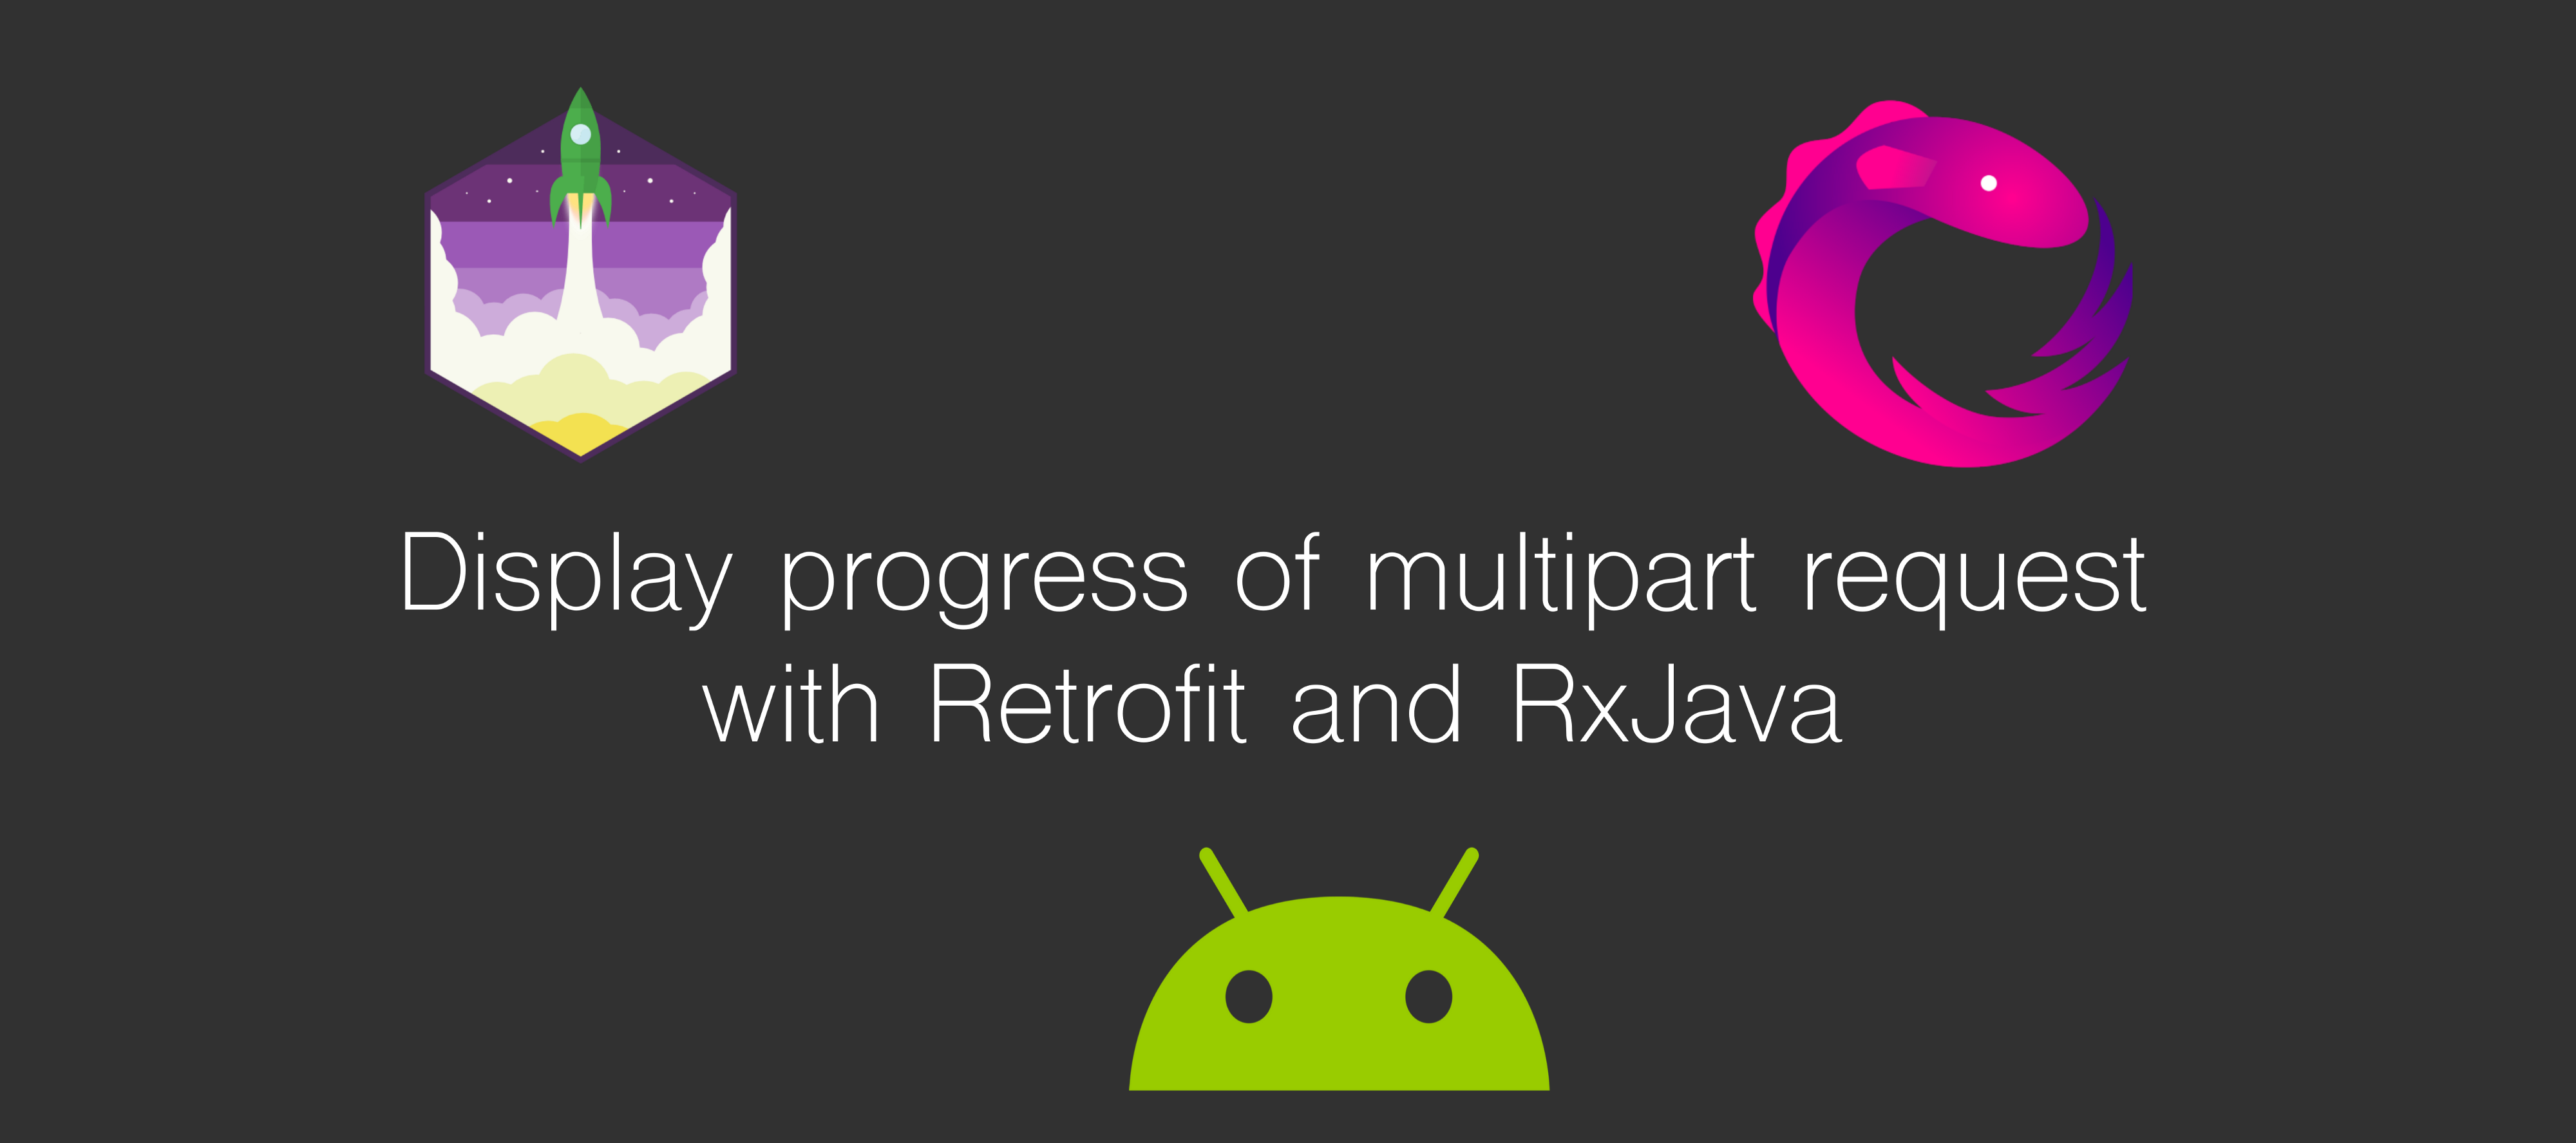 Display progress of multipart request with Retrofit and RxJava